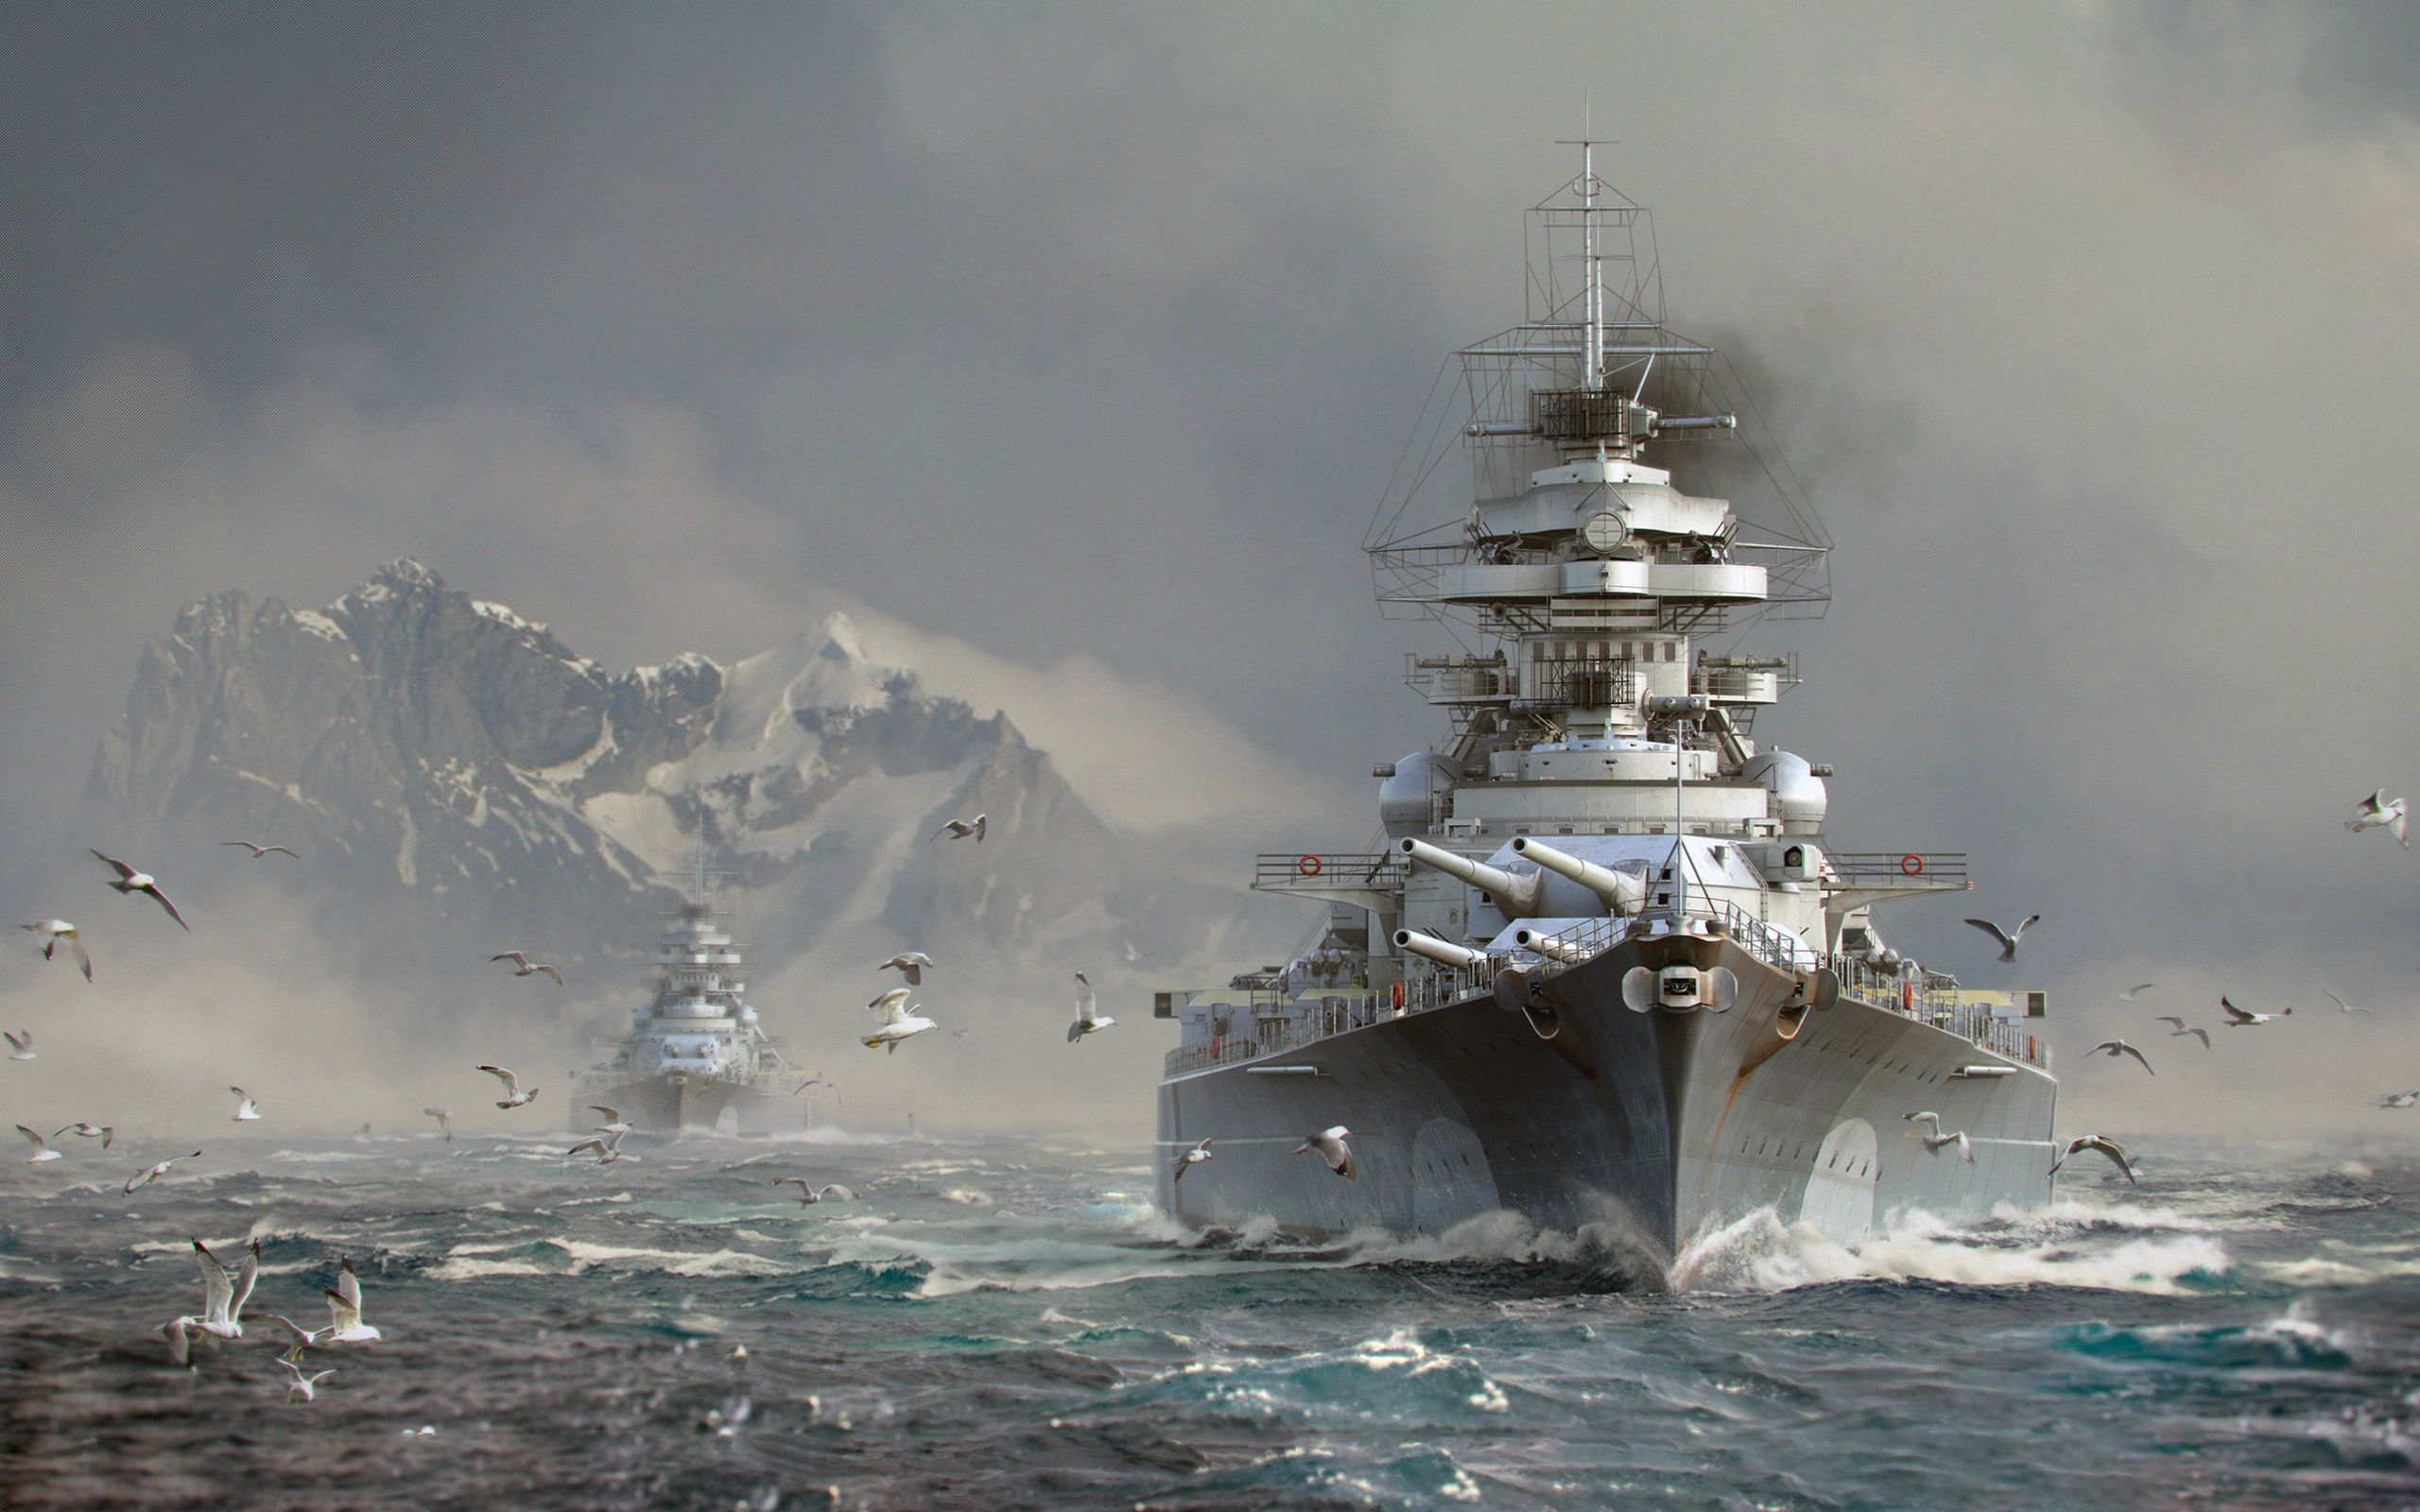 Video Game World Of Warships Wallpaper In 2020 World Of Warships